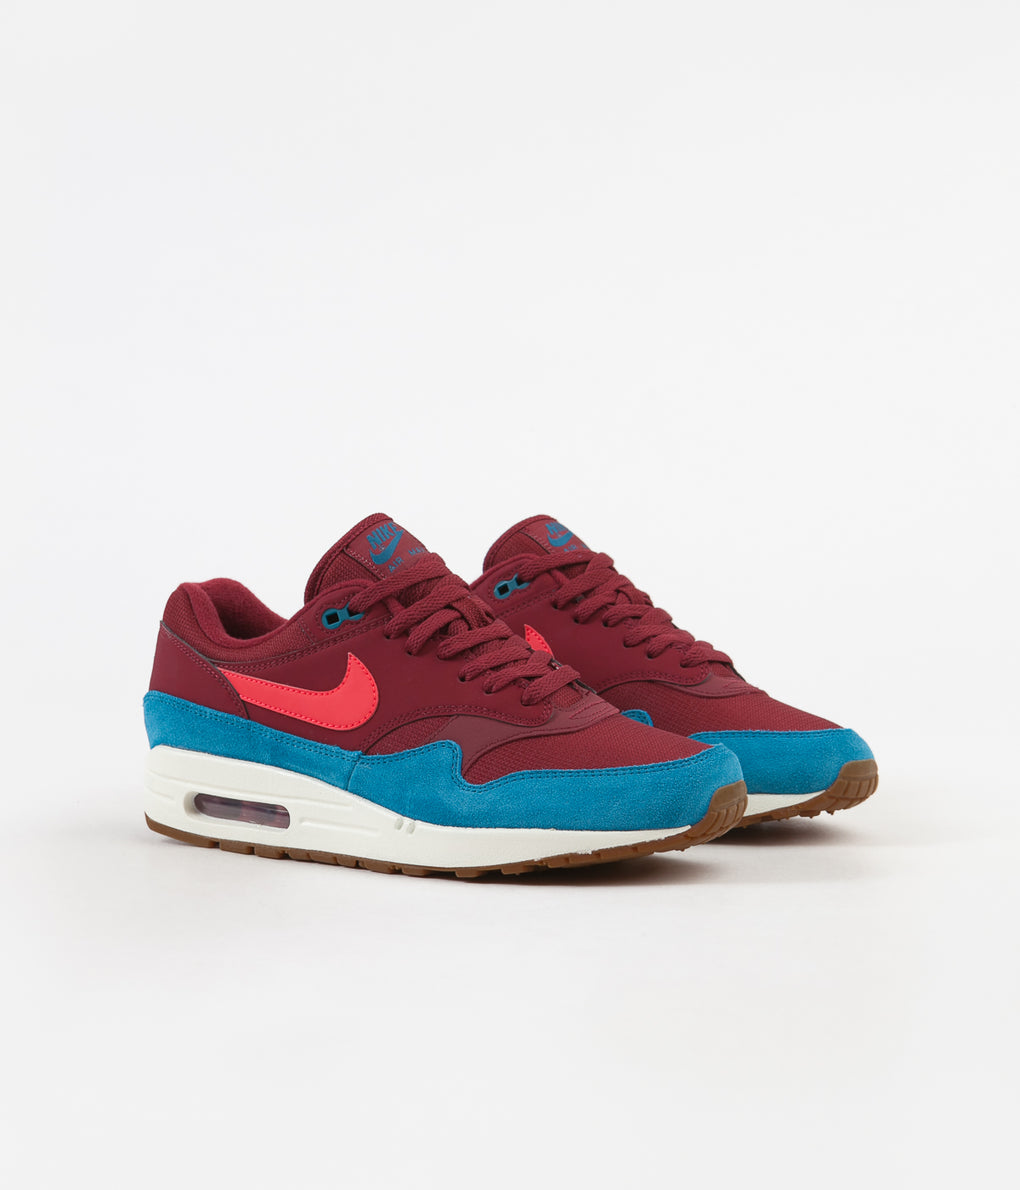 Nike Air Max 1 Shoes - Team Red / Red Orbit - Green Abyss - White